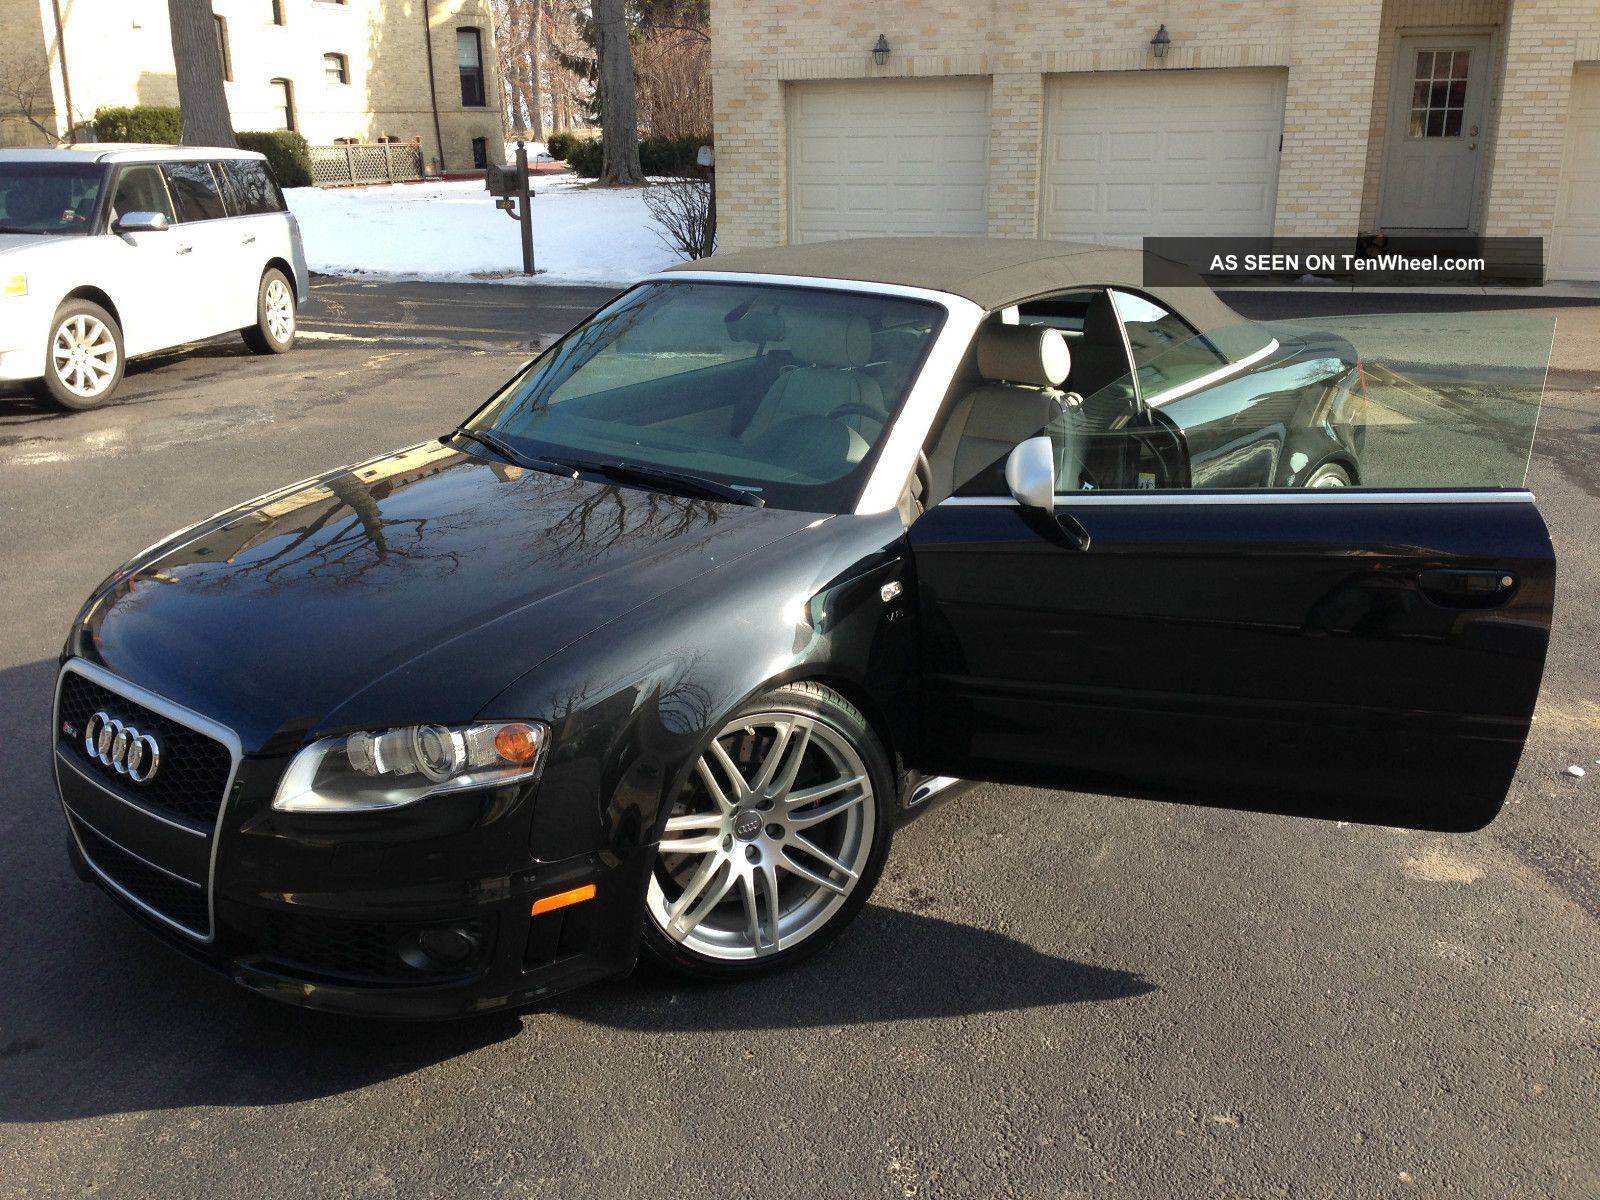 2008 Rs4 Cab Black / Lt Grey 10k In Extras Car Is RS4 photo